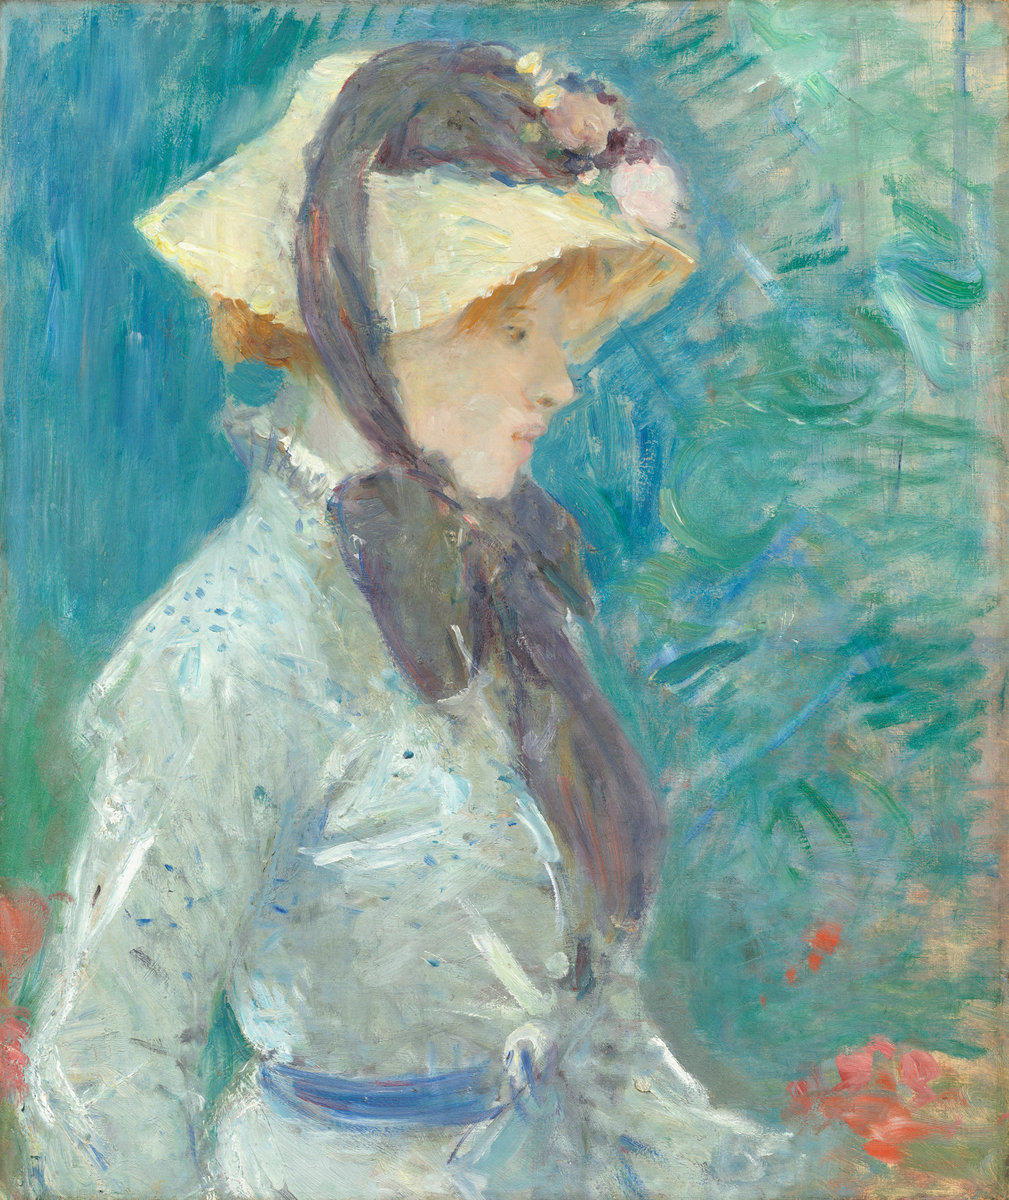 Berthe Morisot, Young Woman with a Straw Hat, 1884